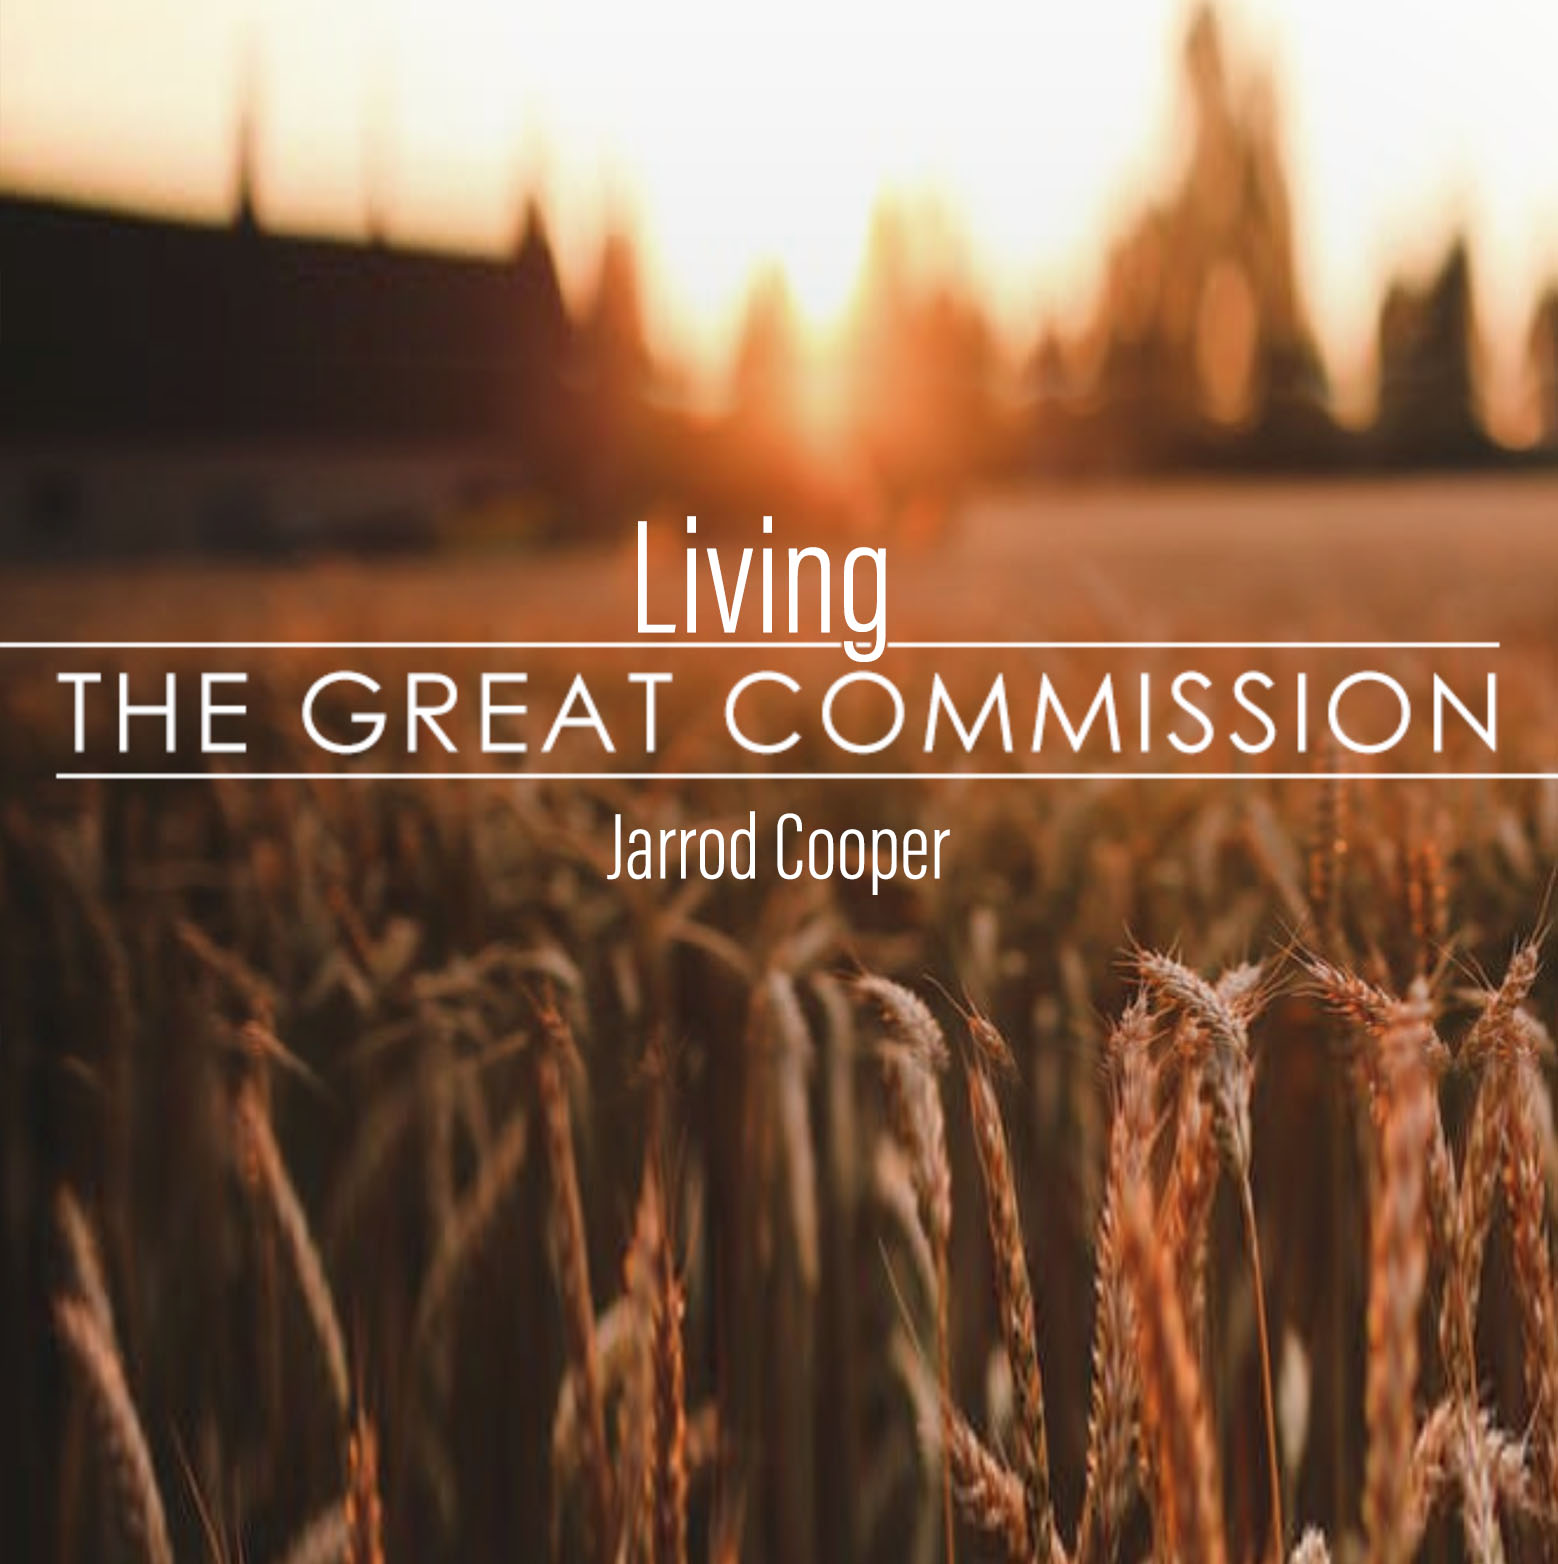 Living The Great Commission Revival Conference 6